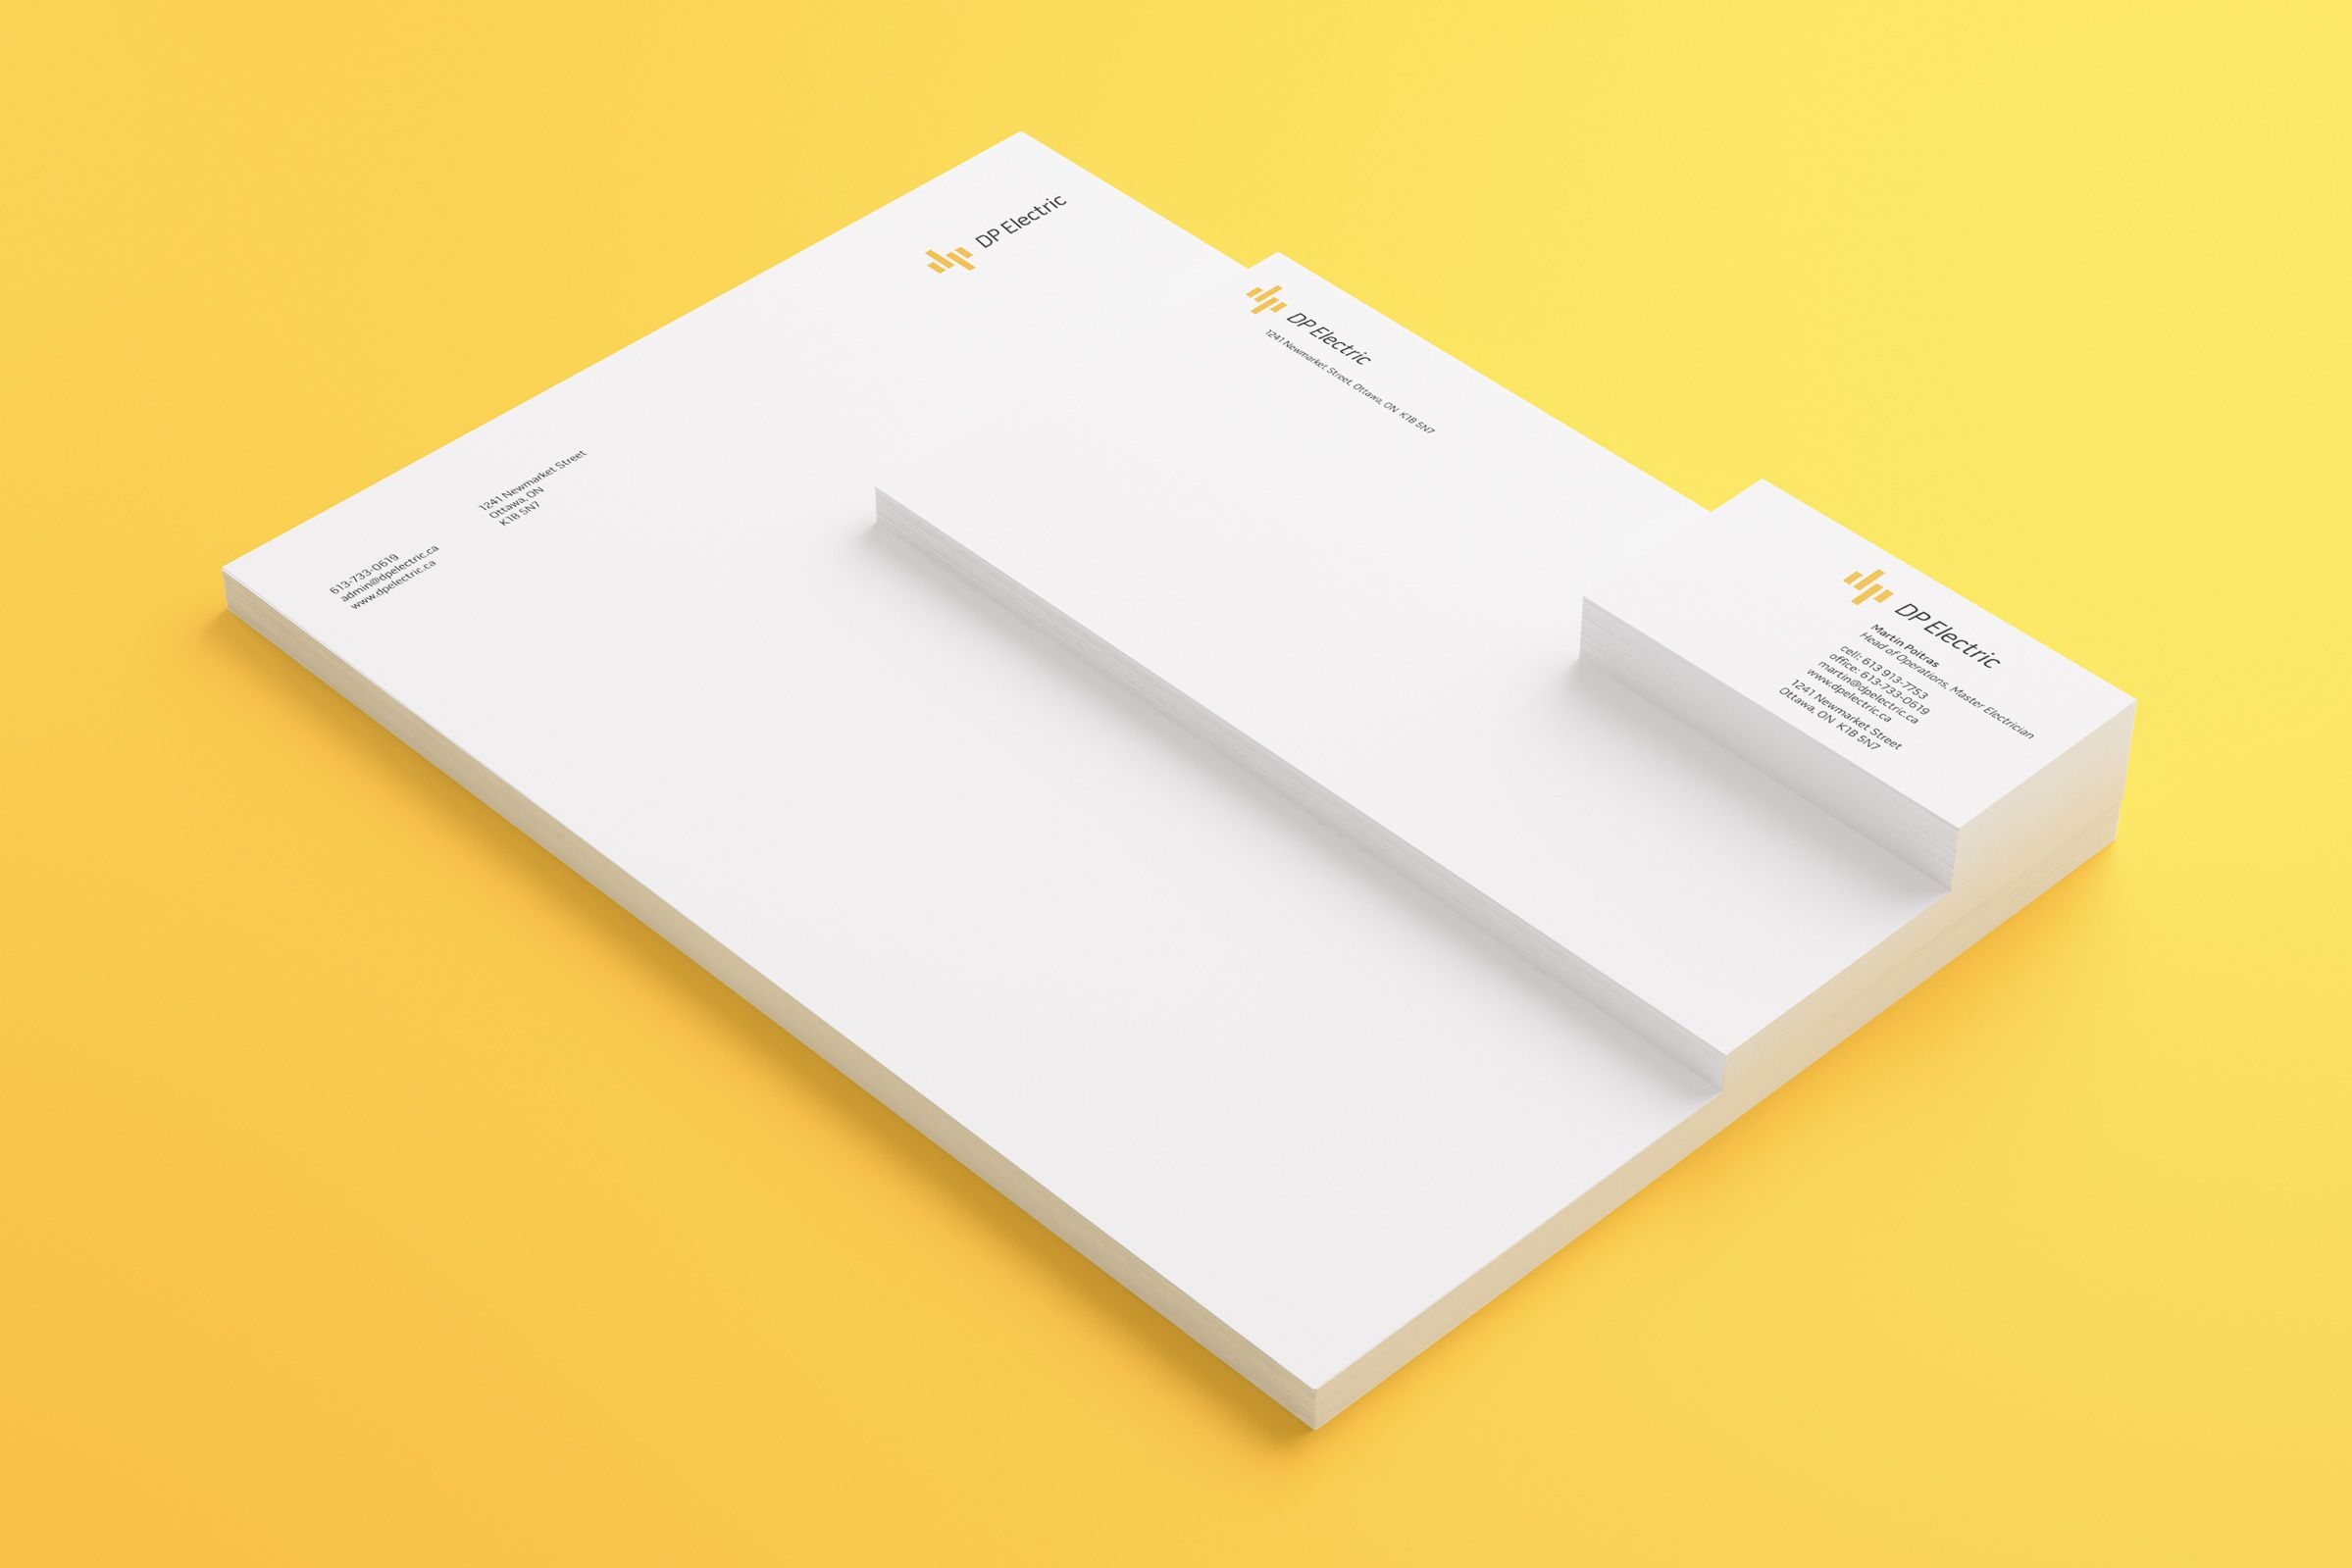 Stationery for DP Electric, an electrical company by Ottawa Graphic Designer idApostle